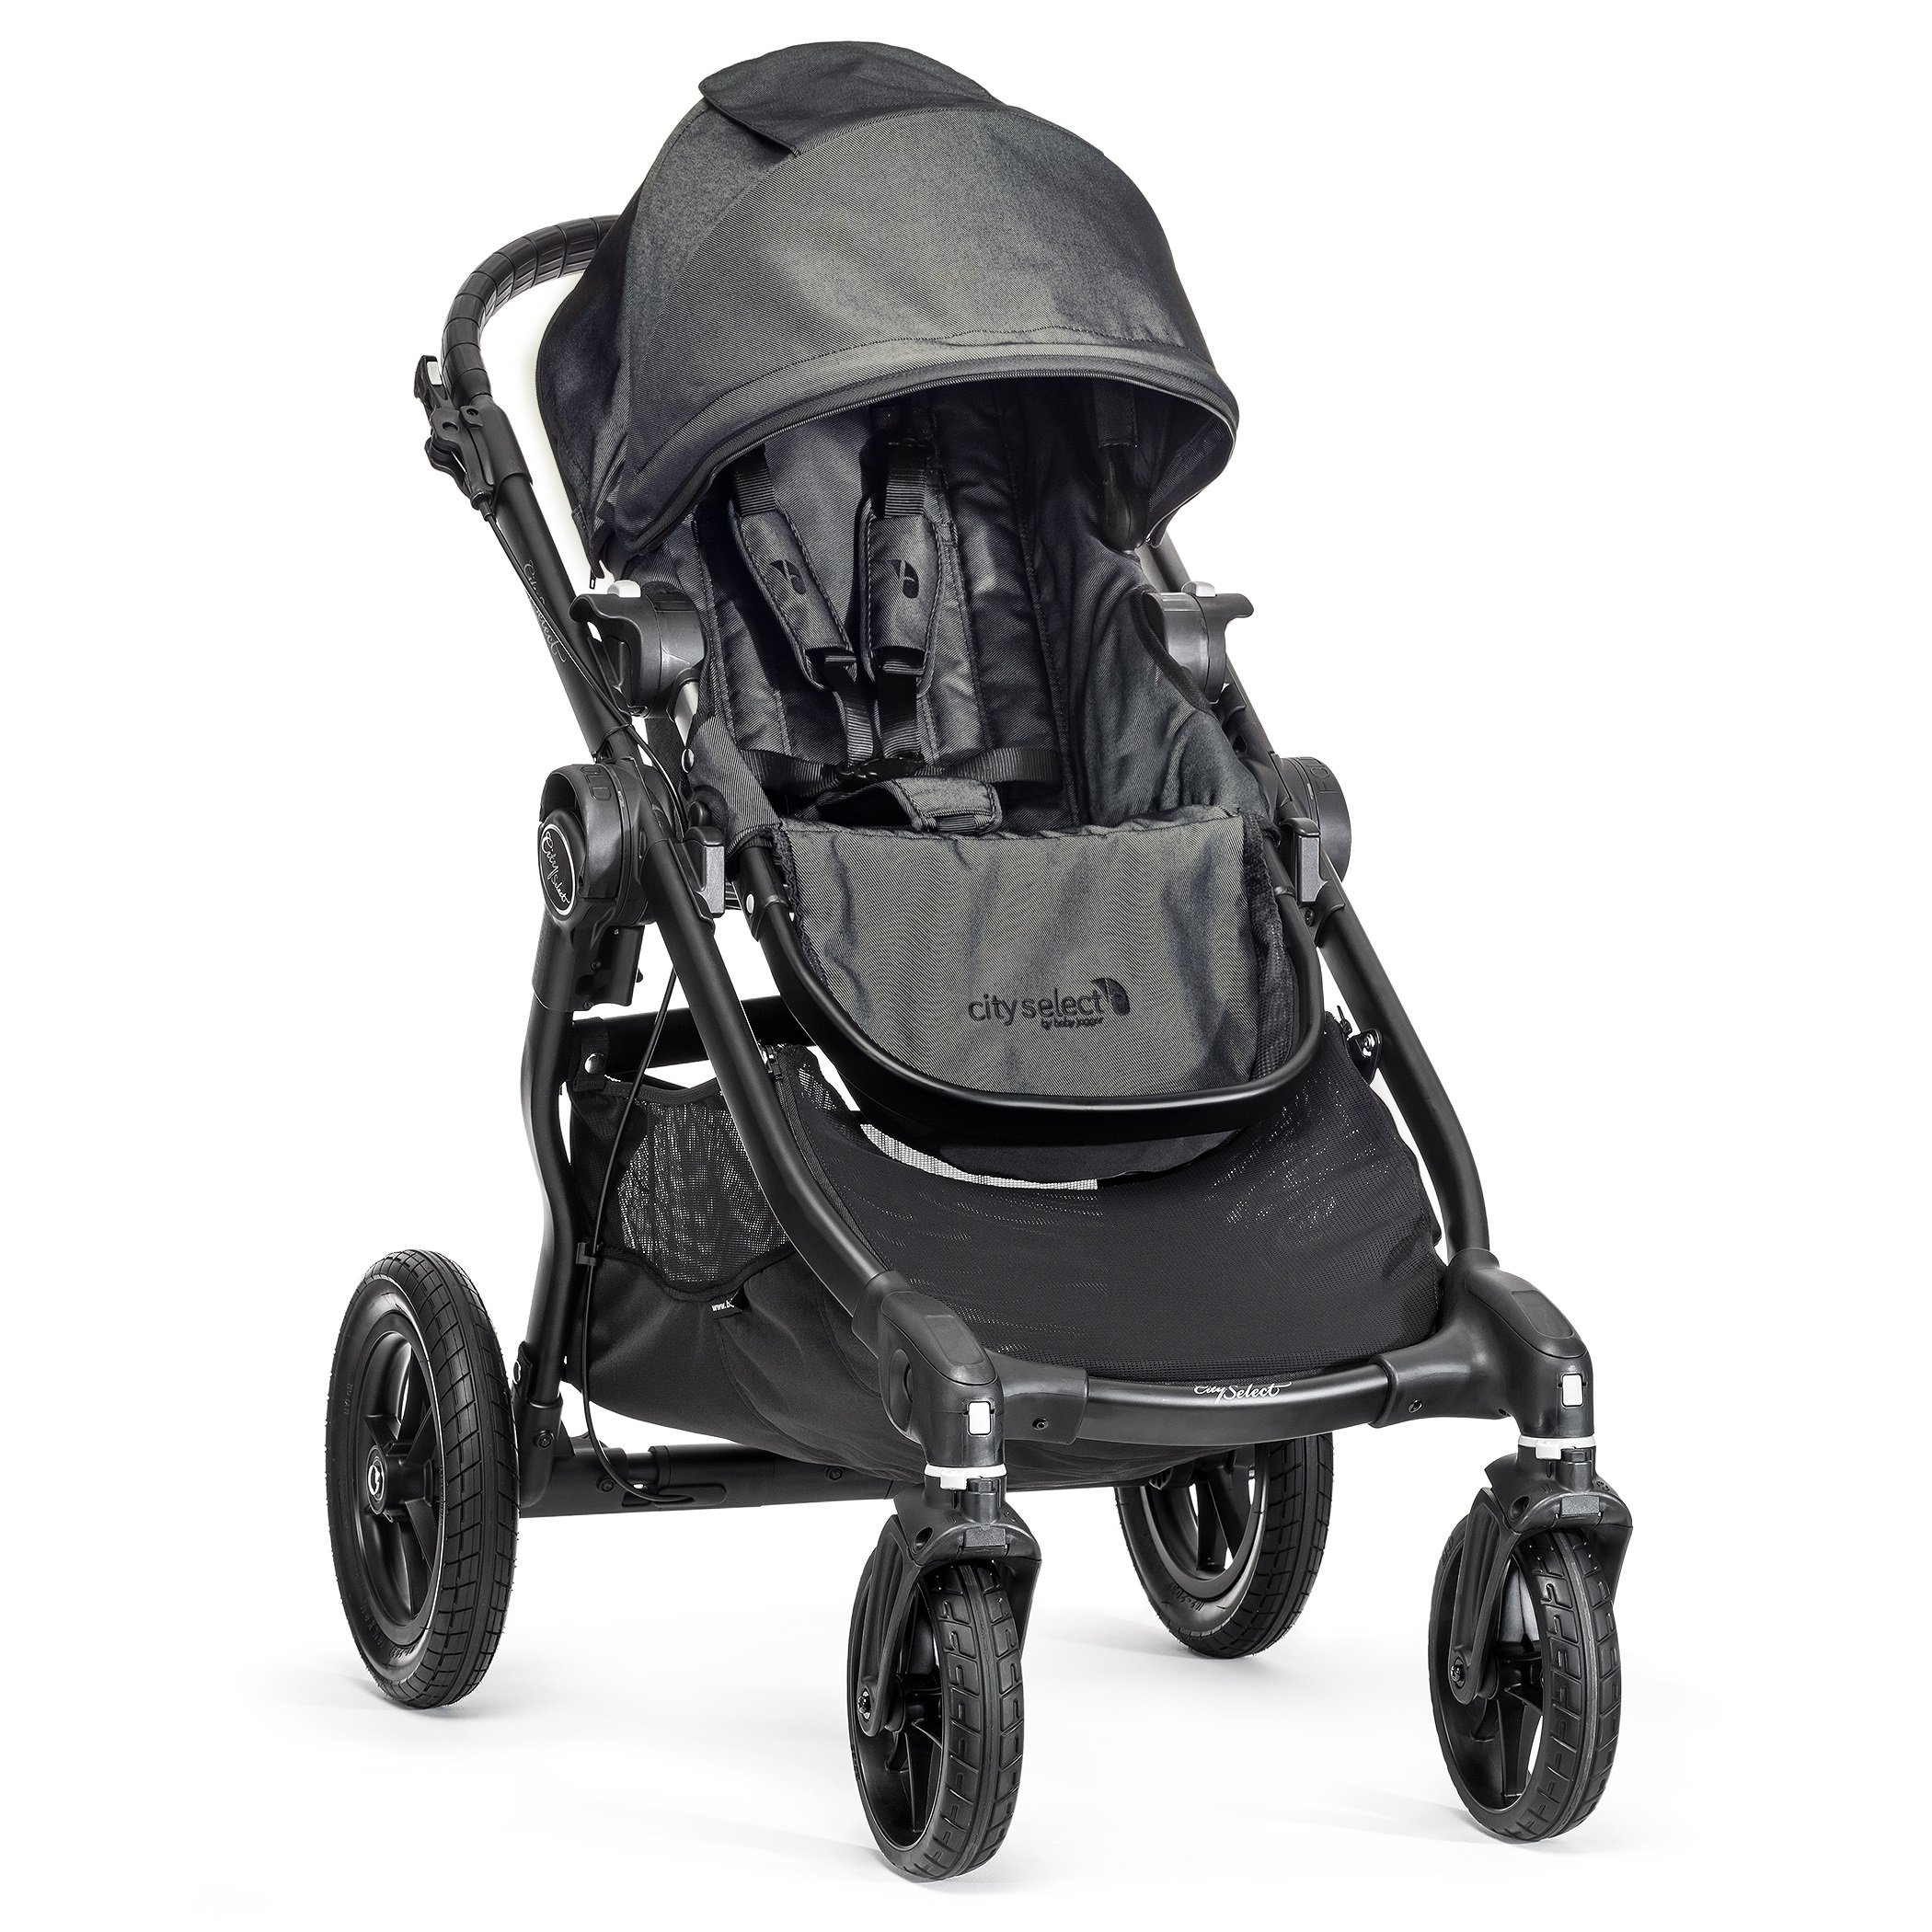 Baby Jogger BJ0142349601 City Select Passeggino, Telaio Black, Charcoal/Denim